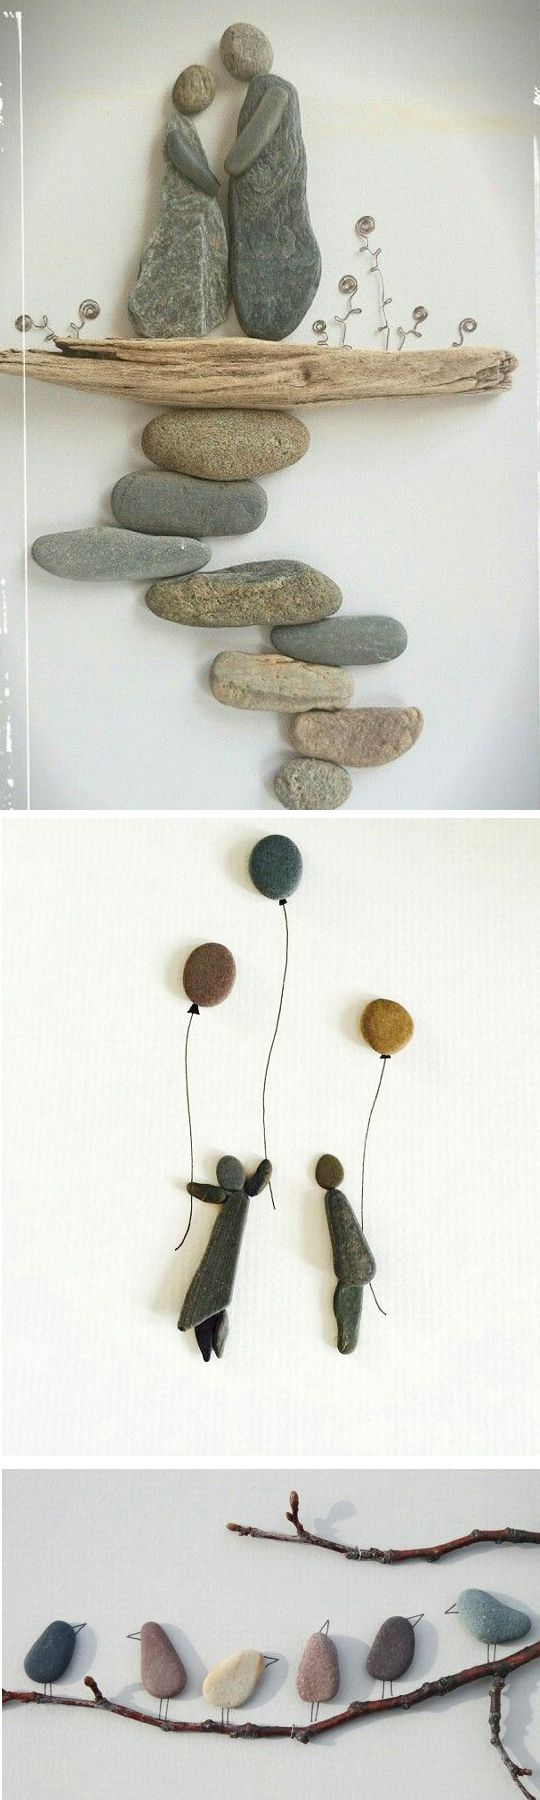 Beautiful inspiration for art with rocks, twigs and other nature items. Natural…